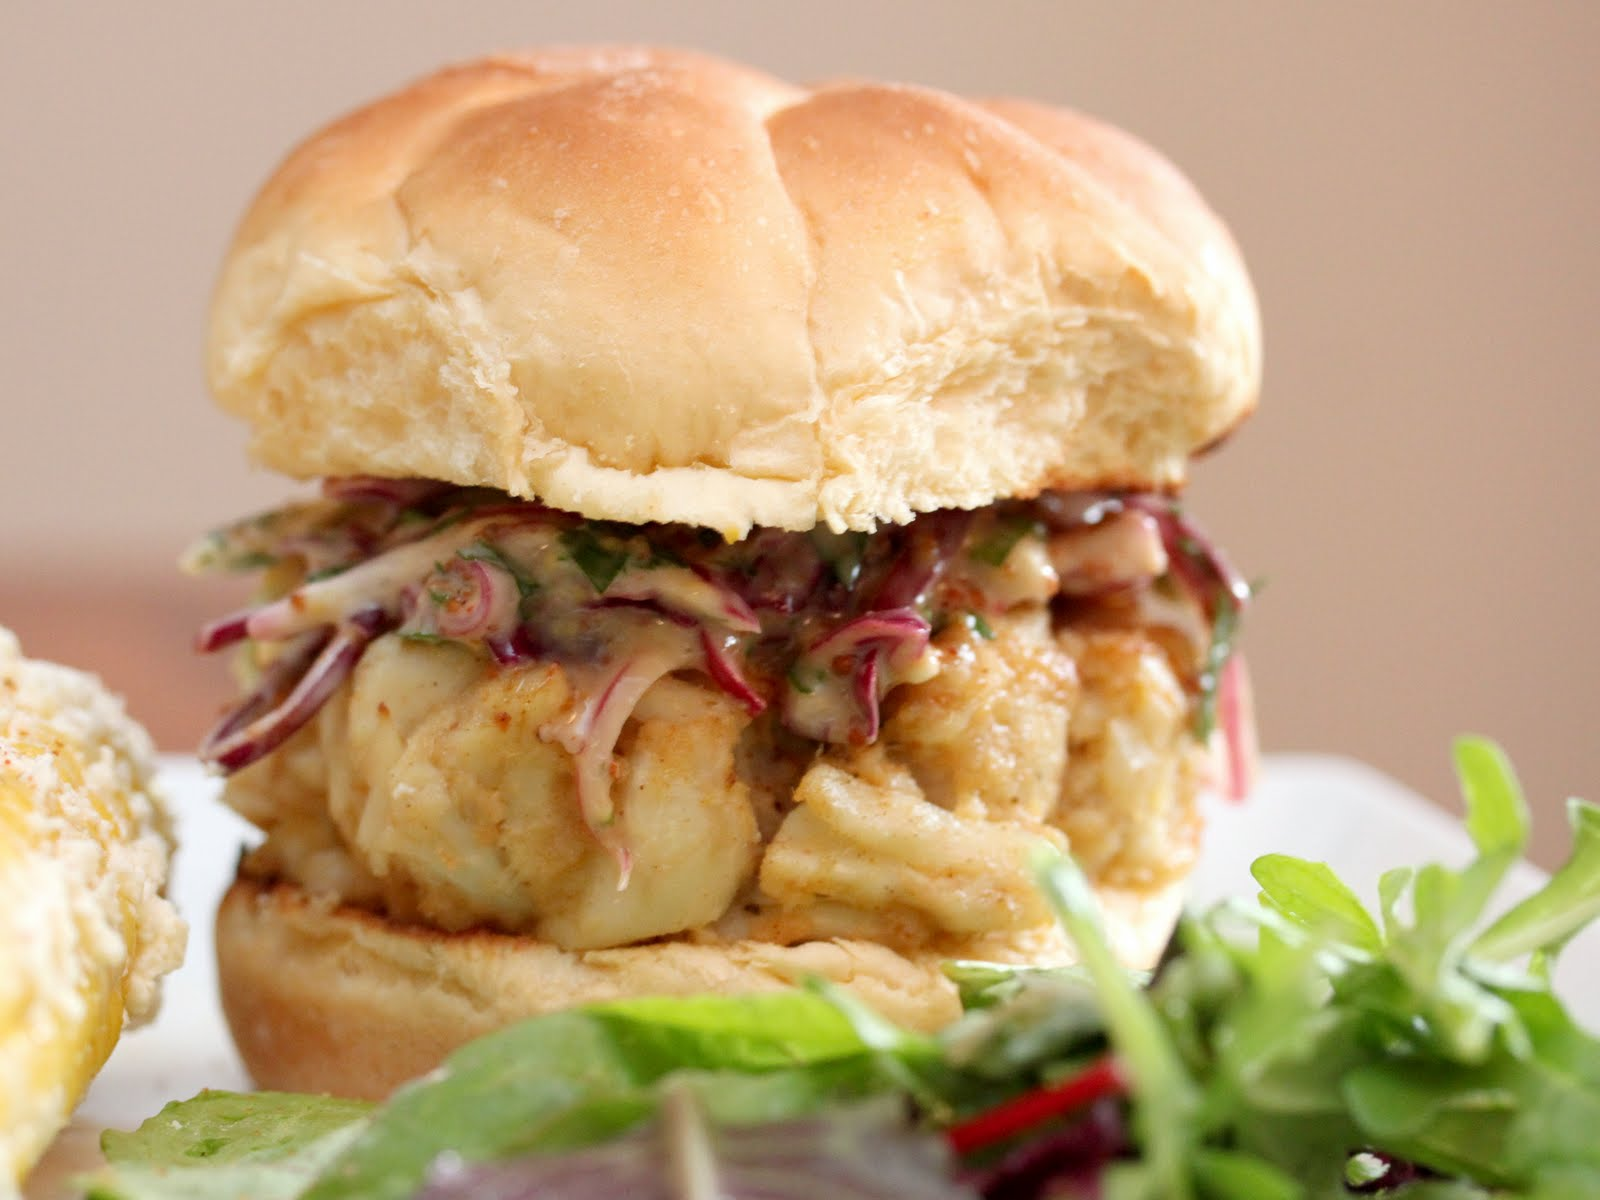 ... most of summer kick i give you the creole crab burger the recipe for